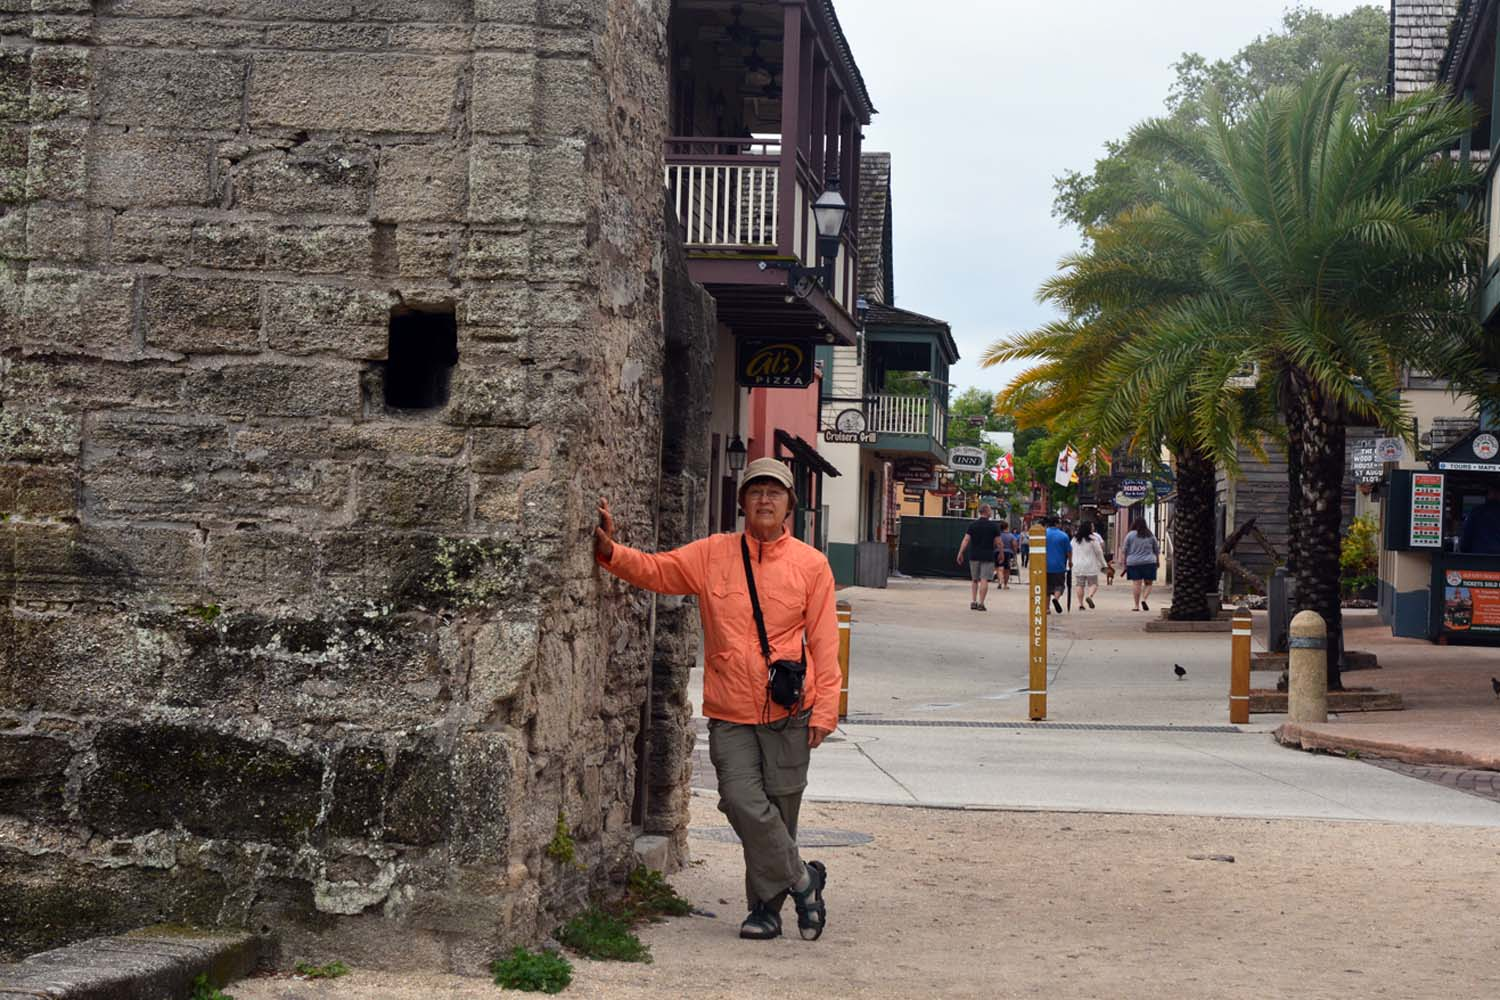 St Augustine walking tour starts here